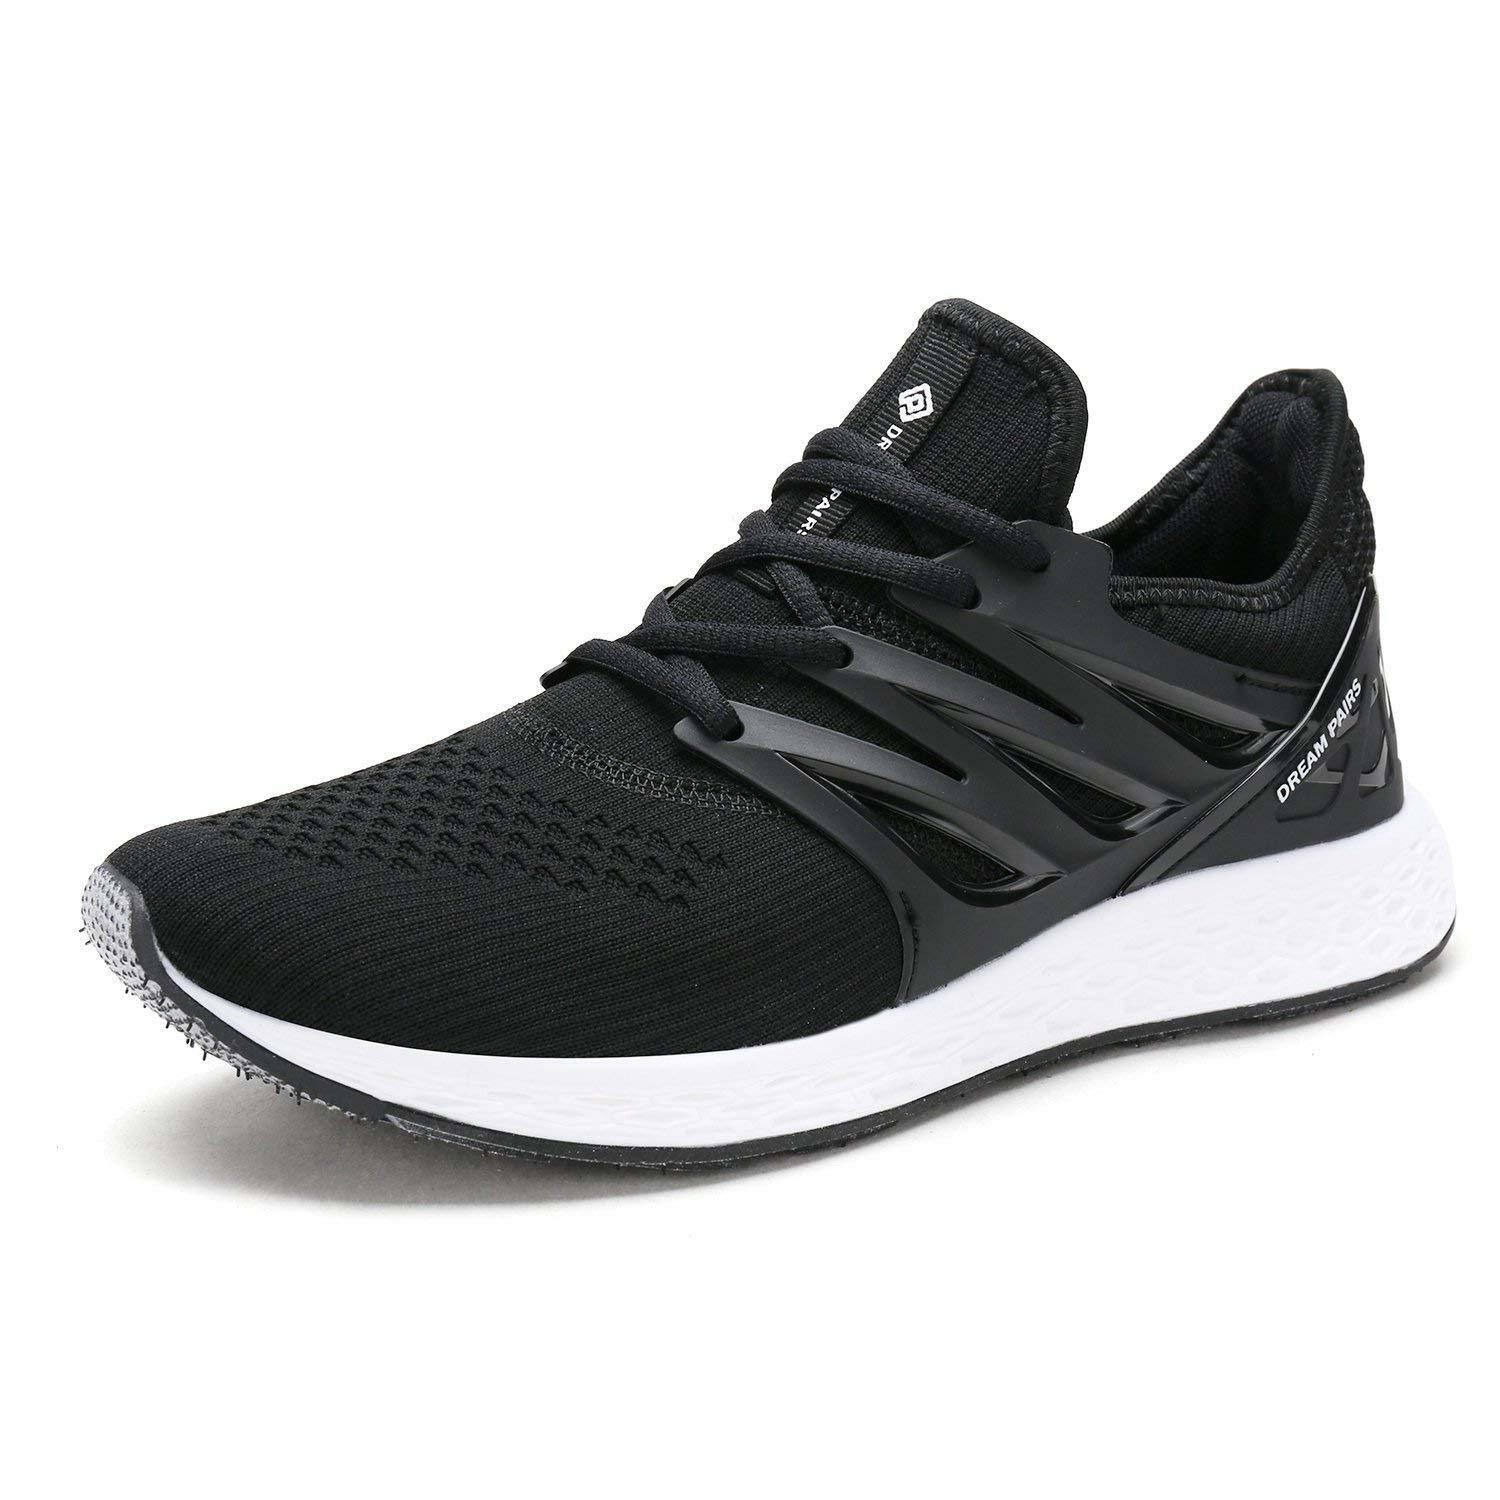 DREAM PAIRS Men's Casual Athletic Lightweight Breathable shoes Sneakers